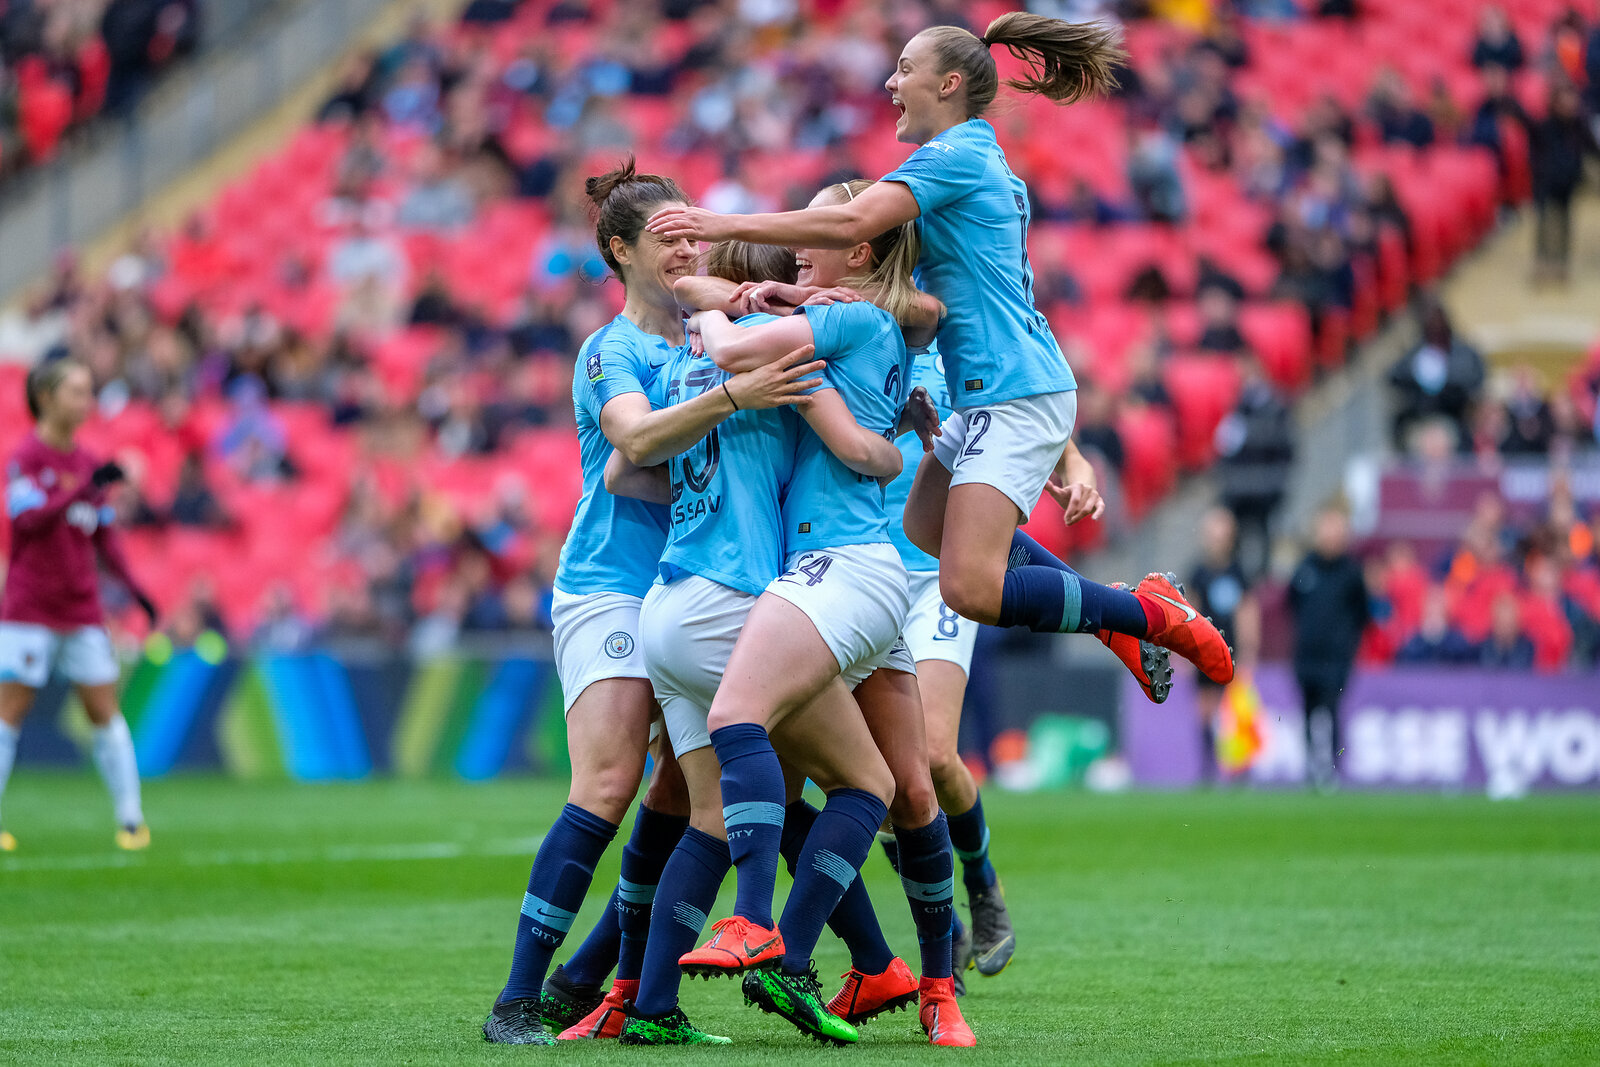 Manchester City Women Vs West Ham United Women